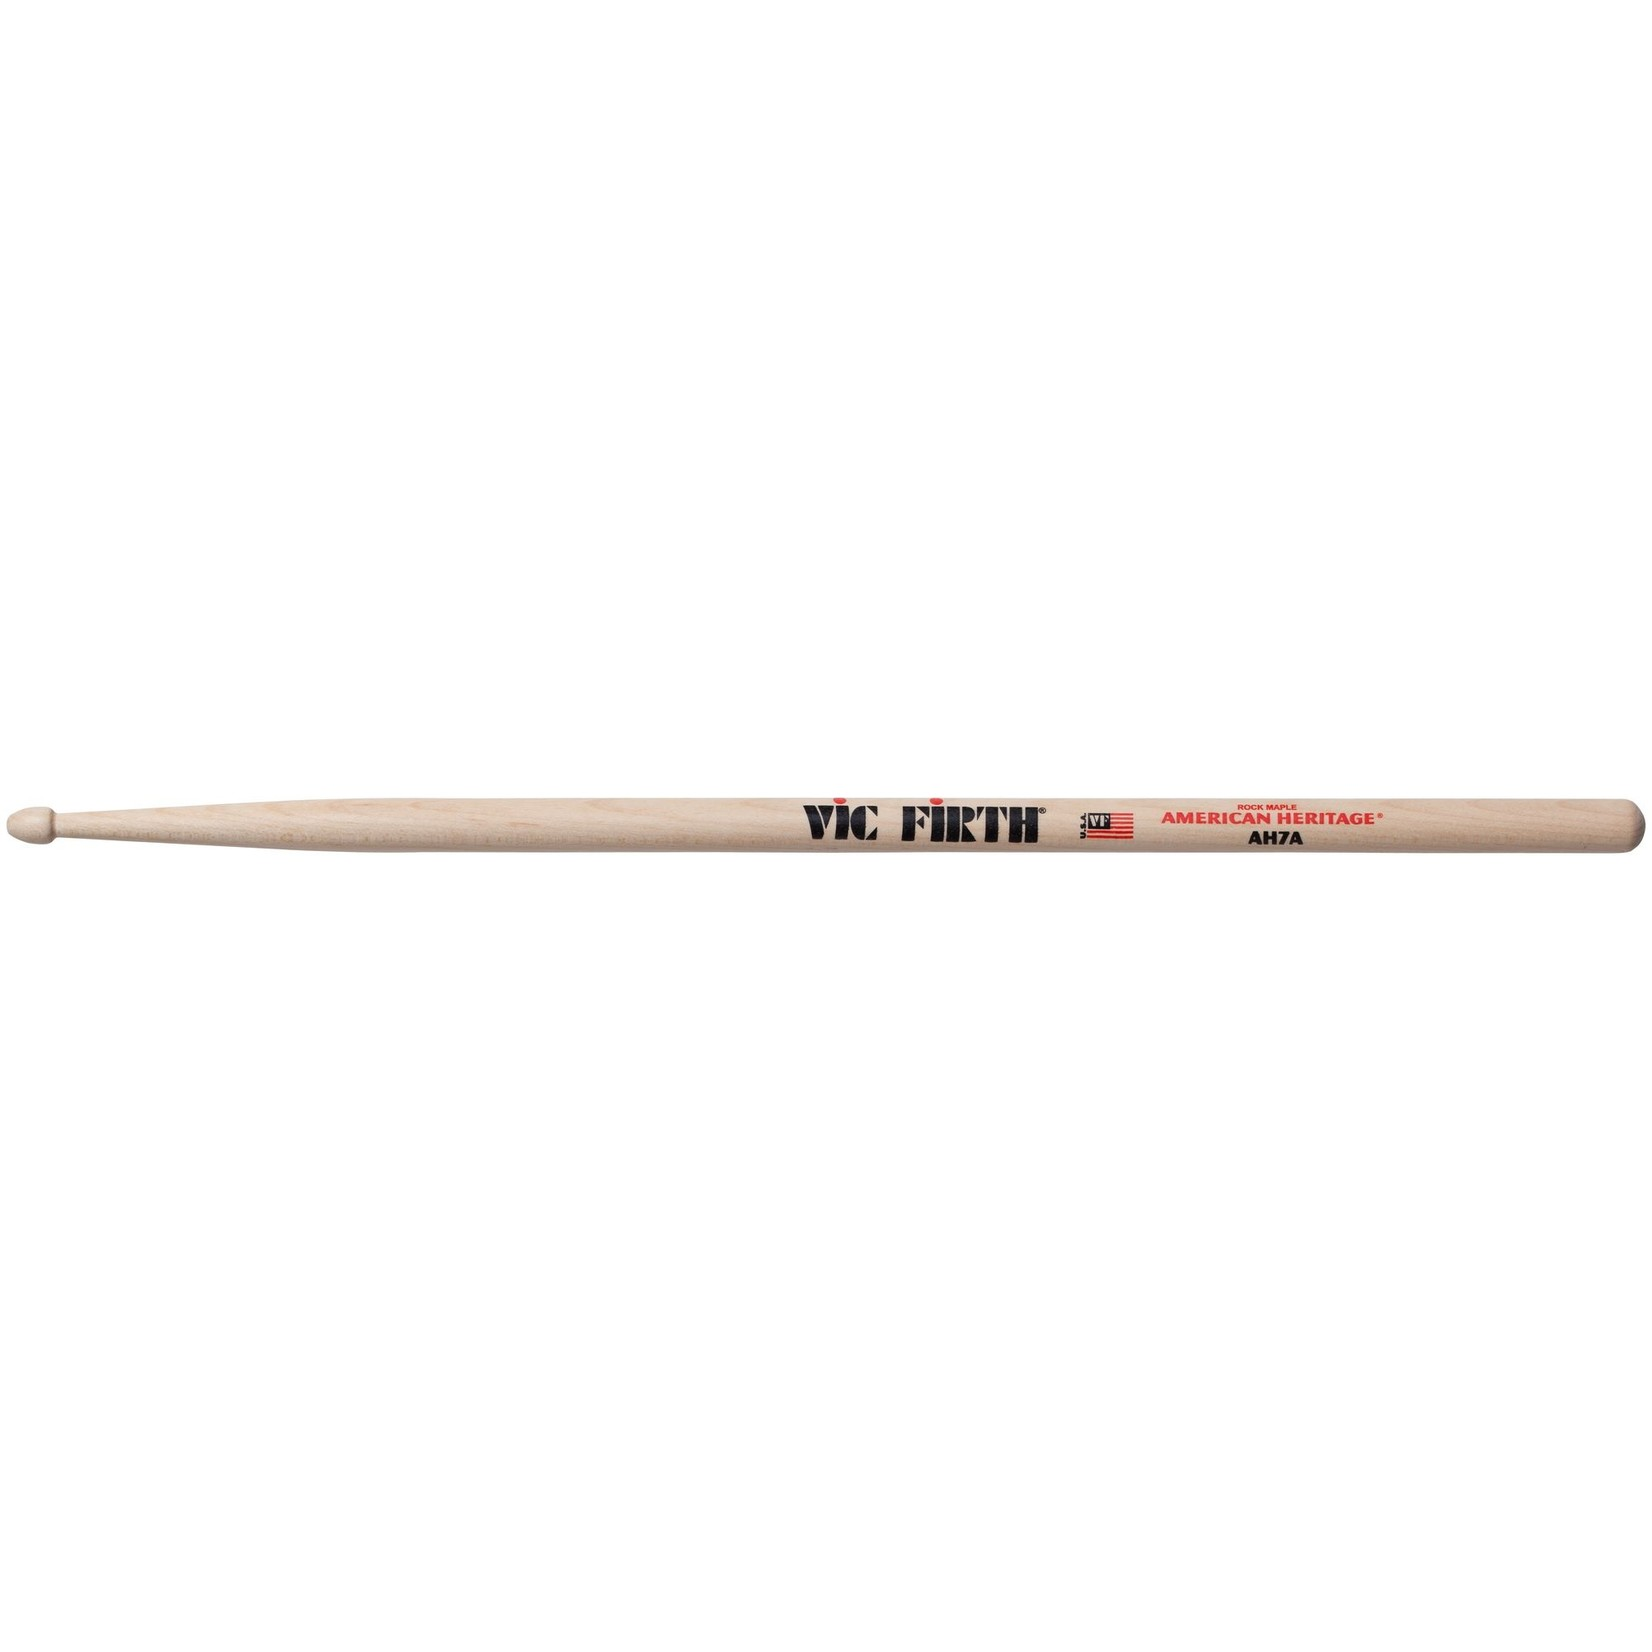 Vic Firth Vic Firth American Heritage® 7A